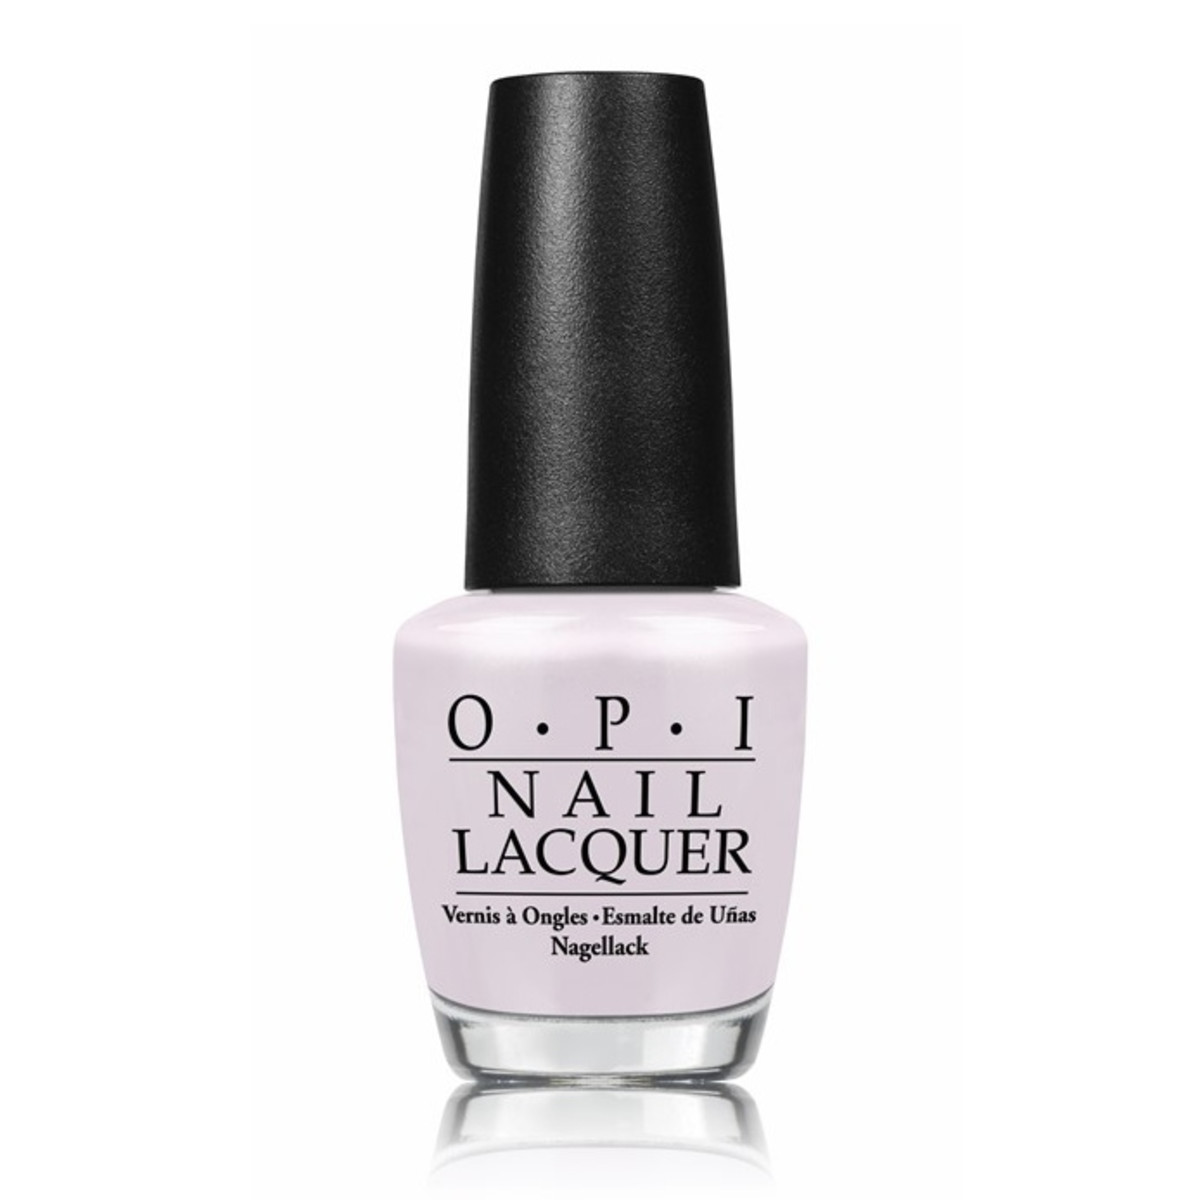 OPI Chiffon My Mind Soft Shades 2015